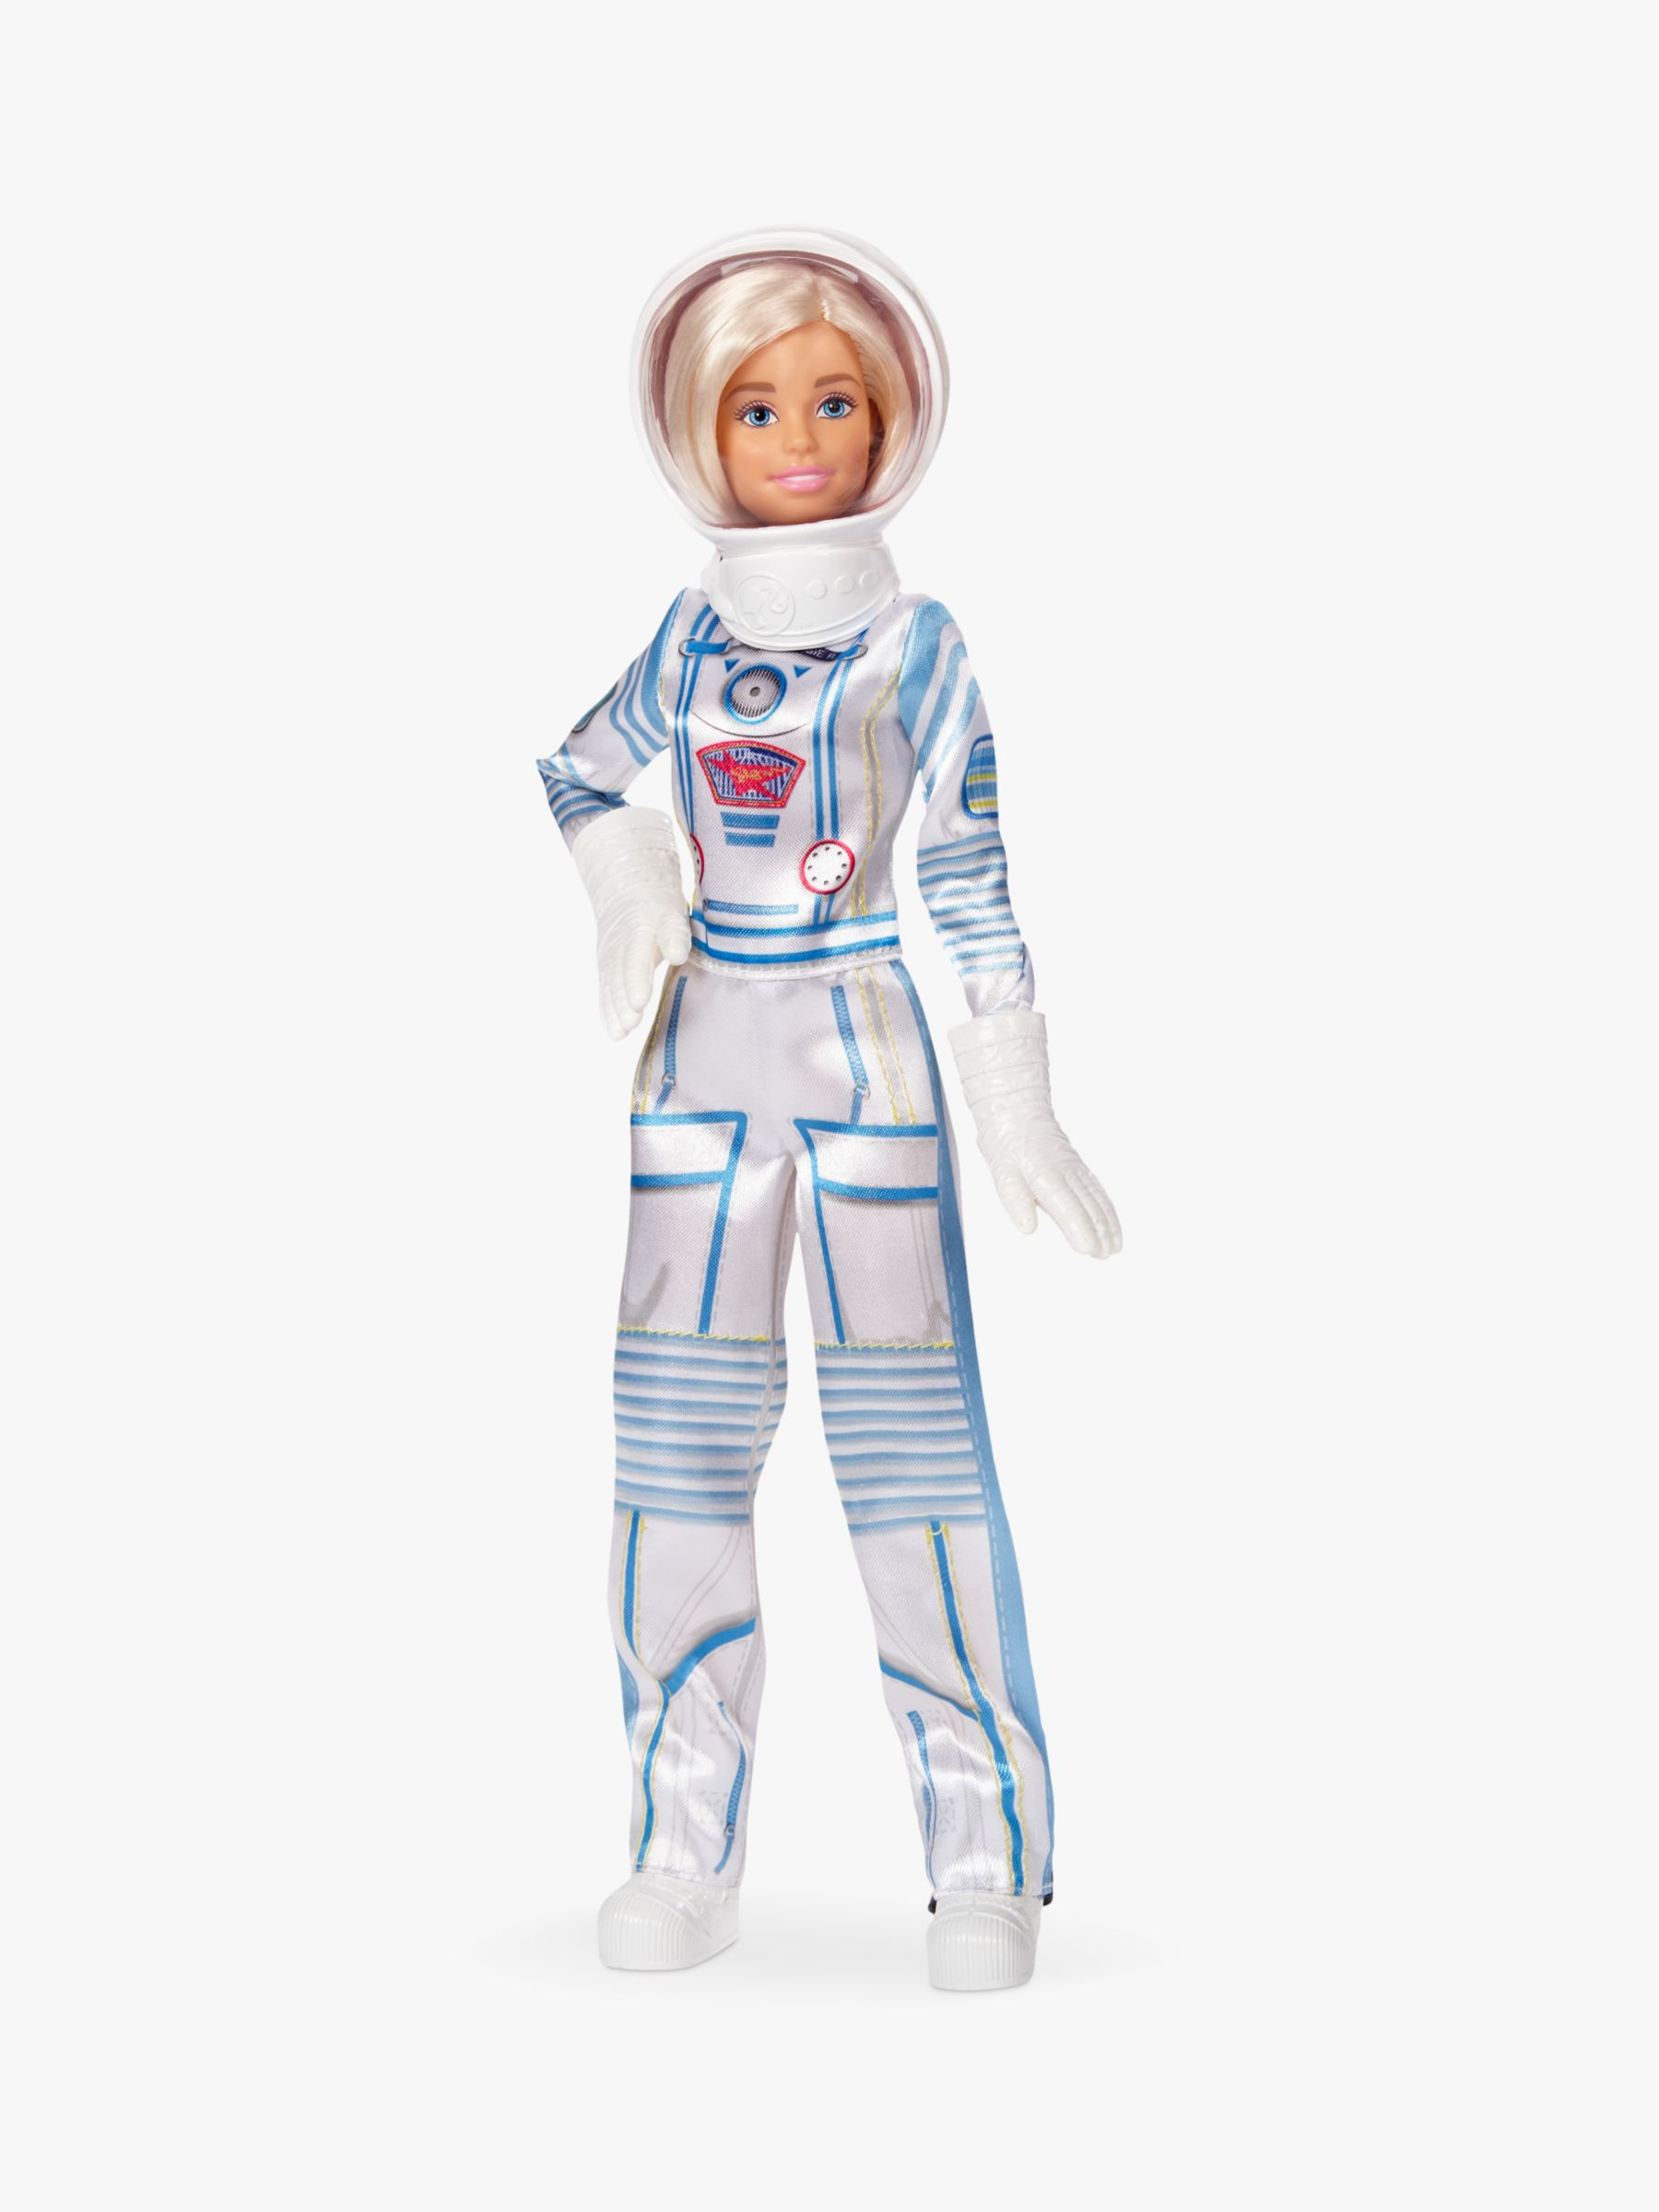 Barbie Barbie I Can Be a Astronaut 60th Anniversary Career Doll